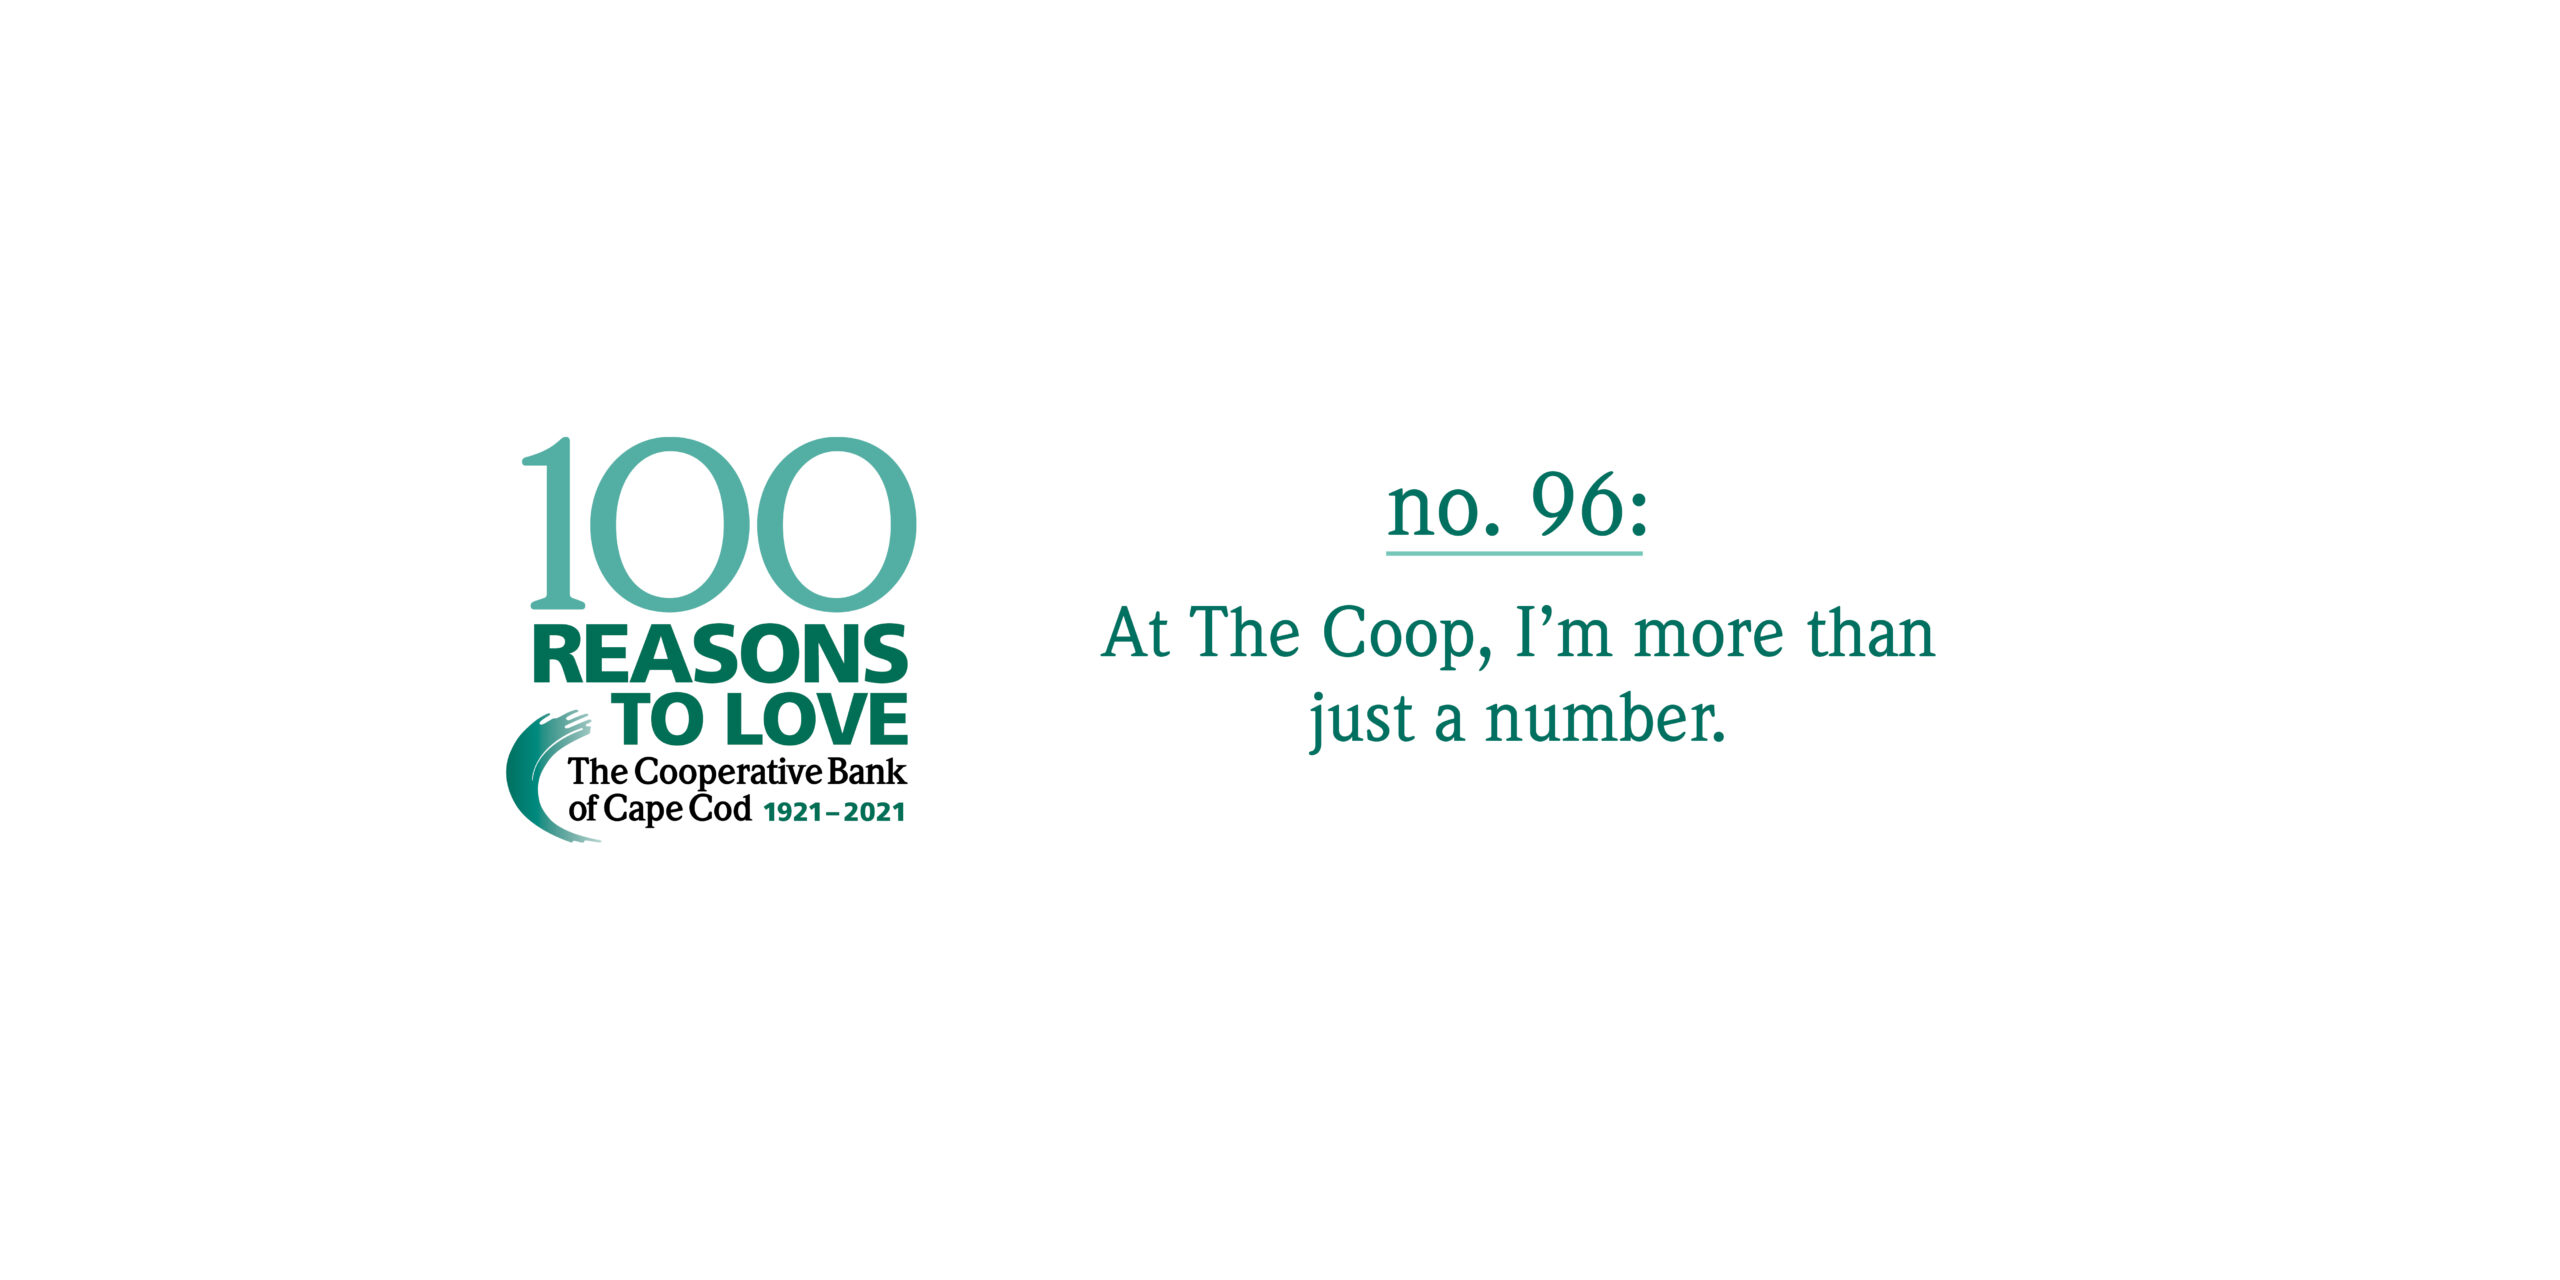 100 Reasons to Love The Coop - Reason #96: At The Coop, I'm more than just a number.